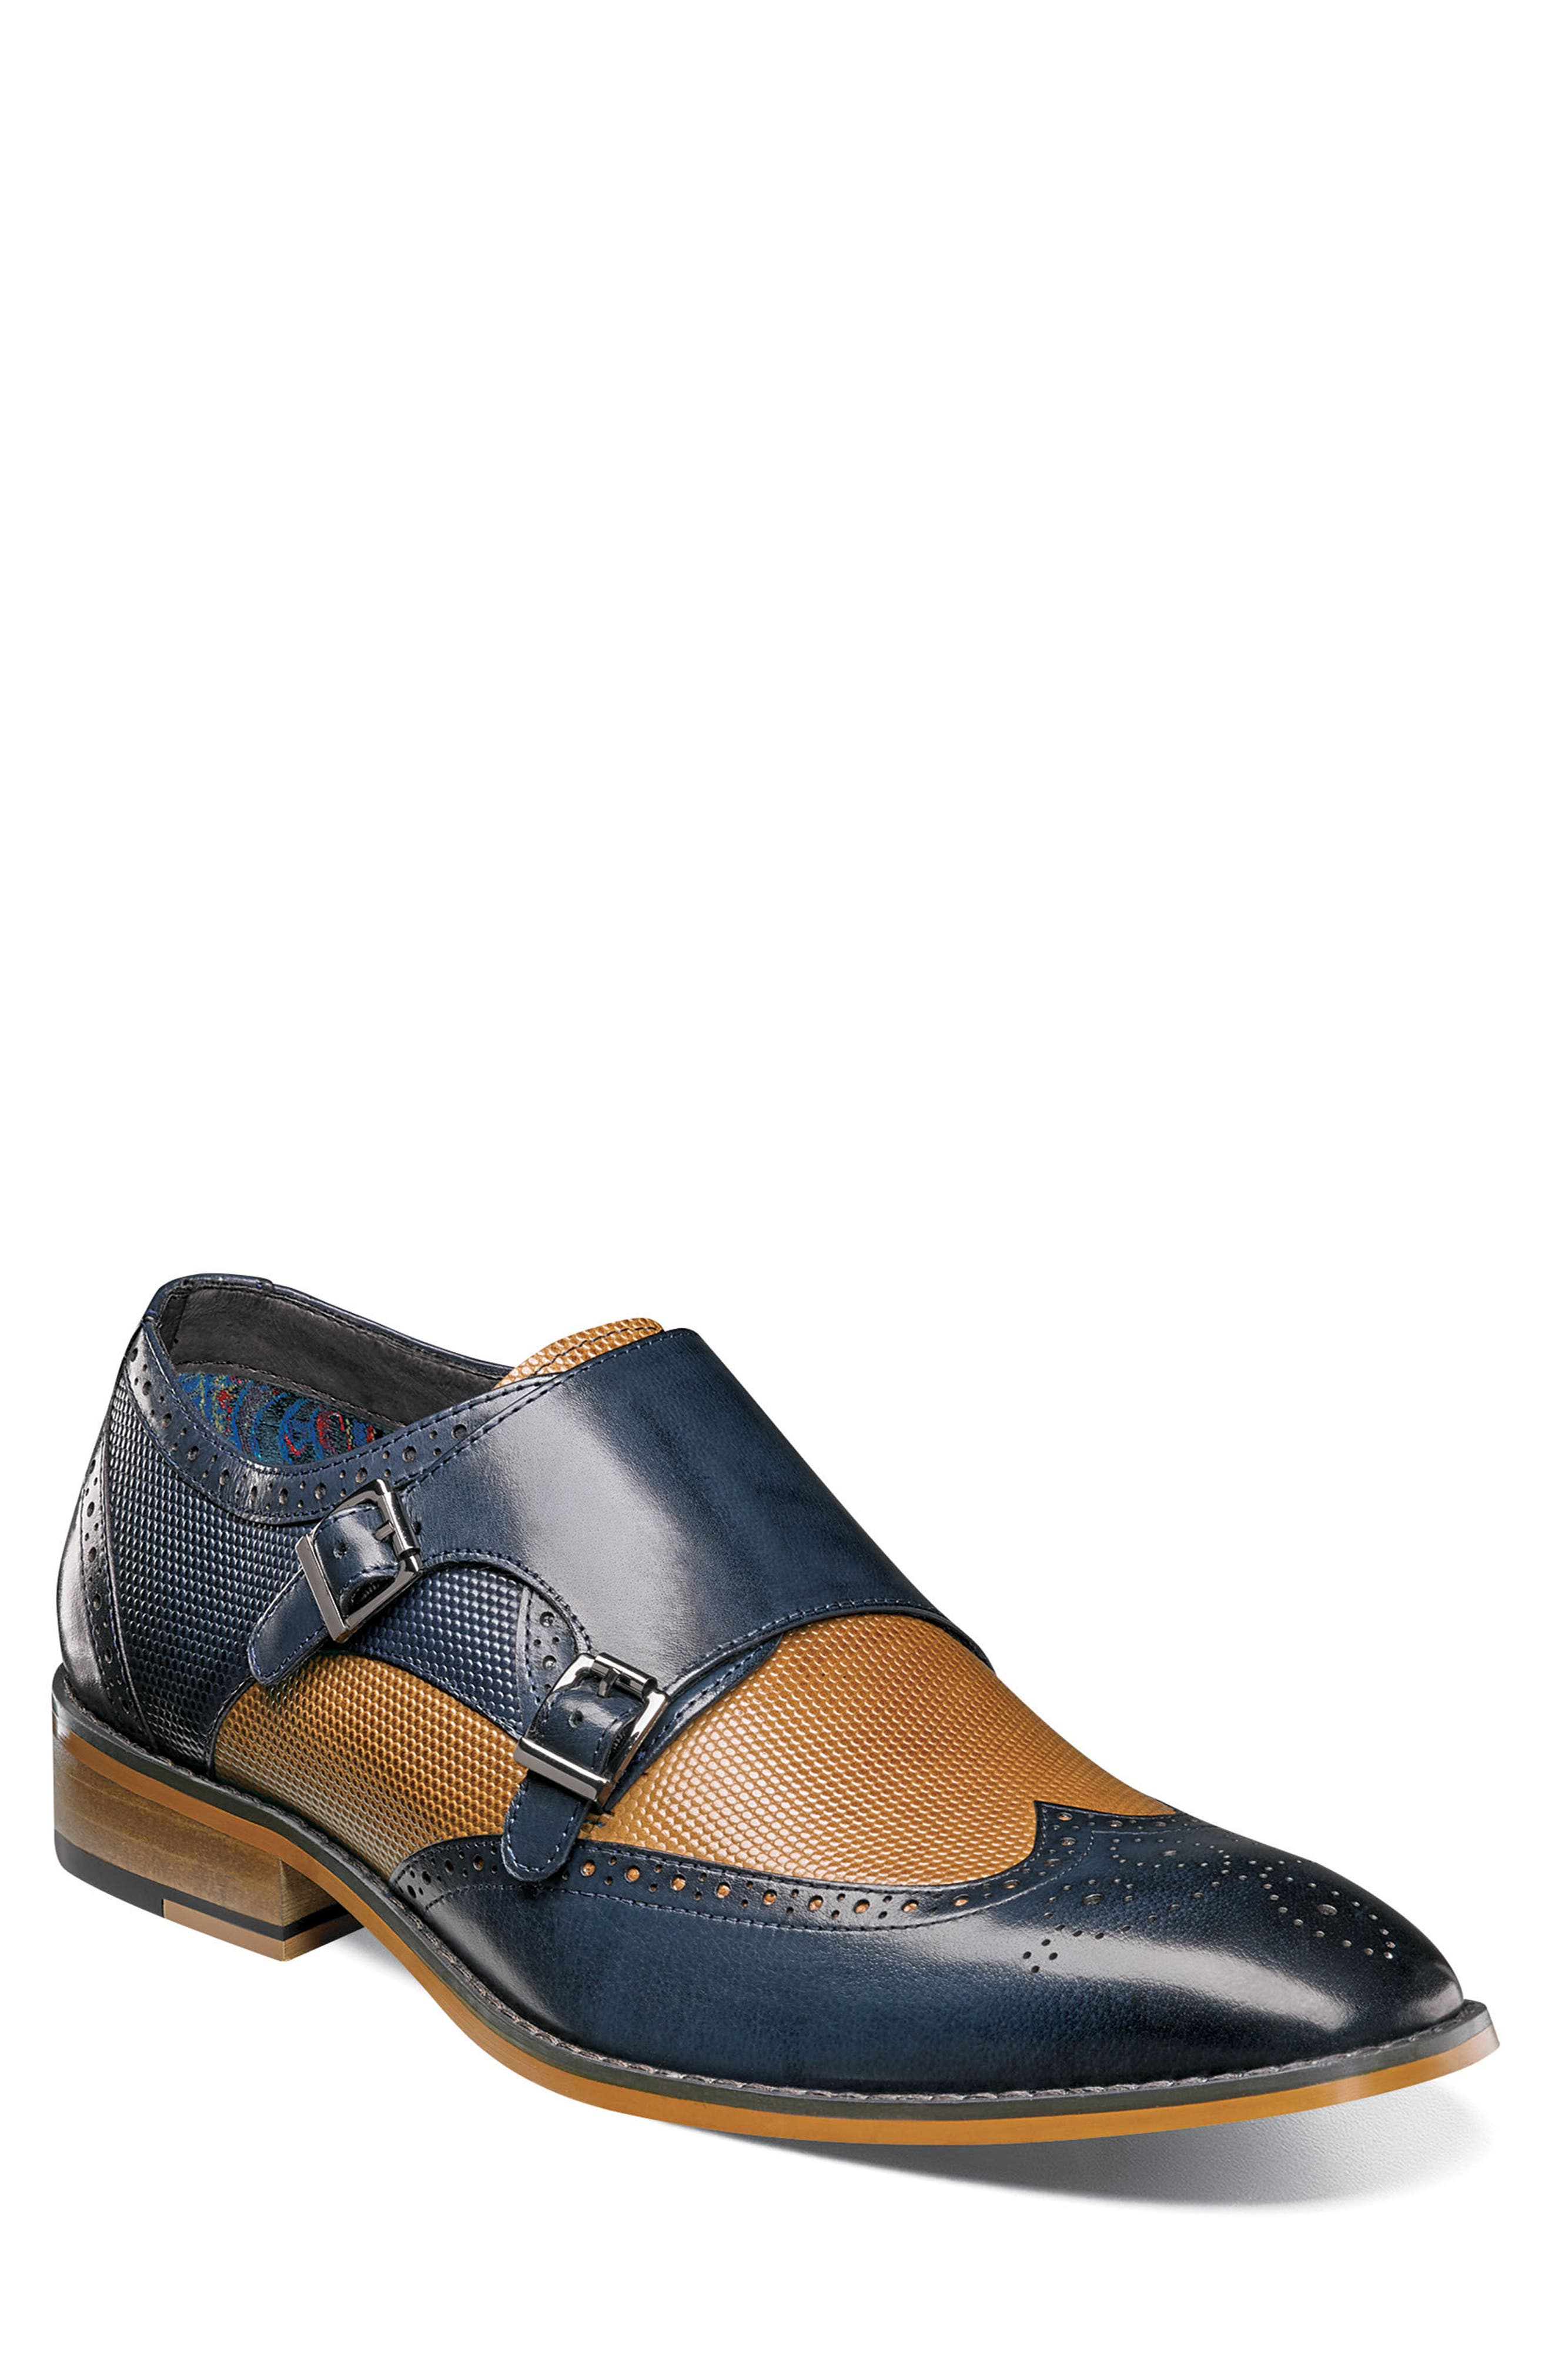 STACY ADAMS, Lavine Wingtip Monk Shoe, Alternate thumbnail 2, color, NAVY AND SADDLE TAN LEATHER